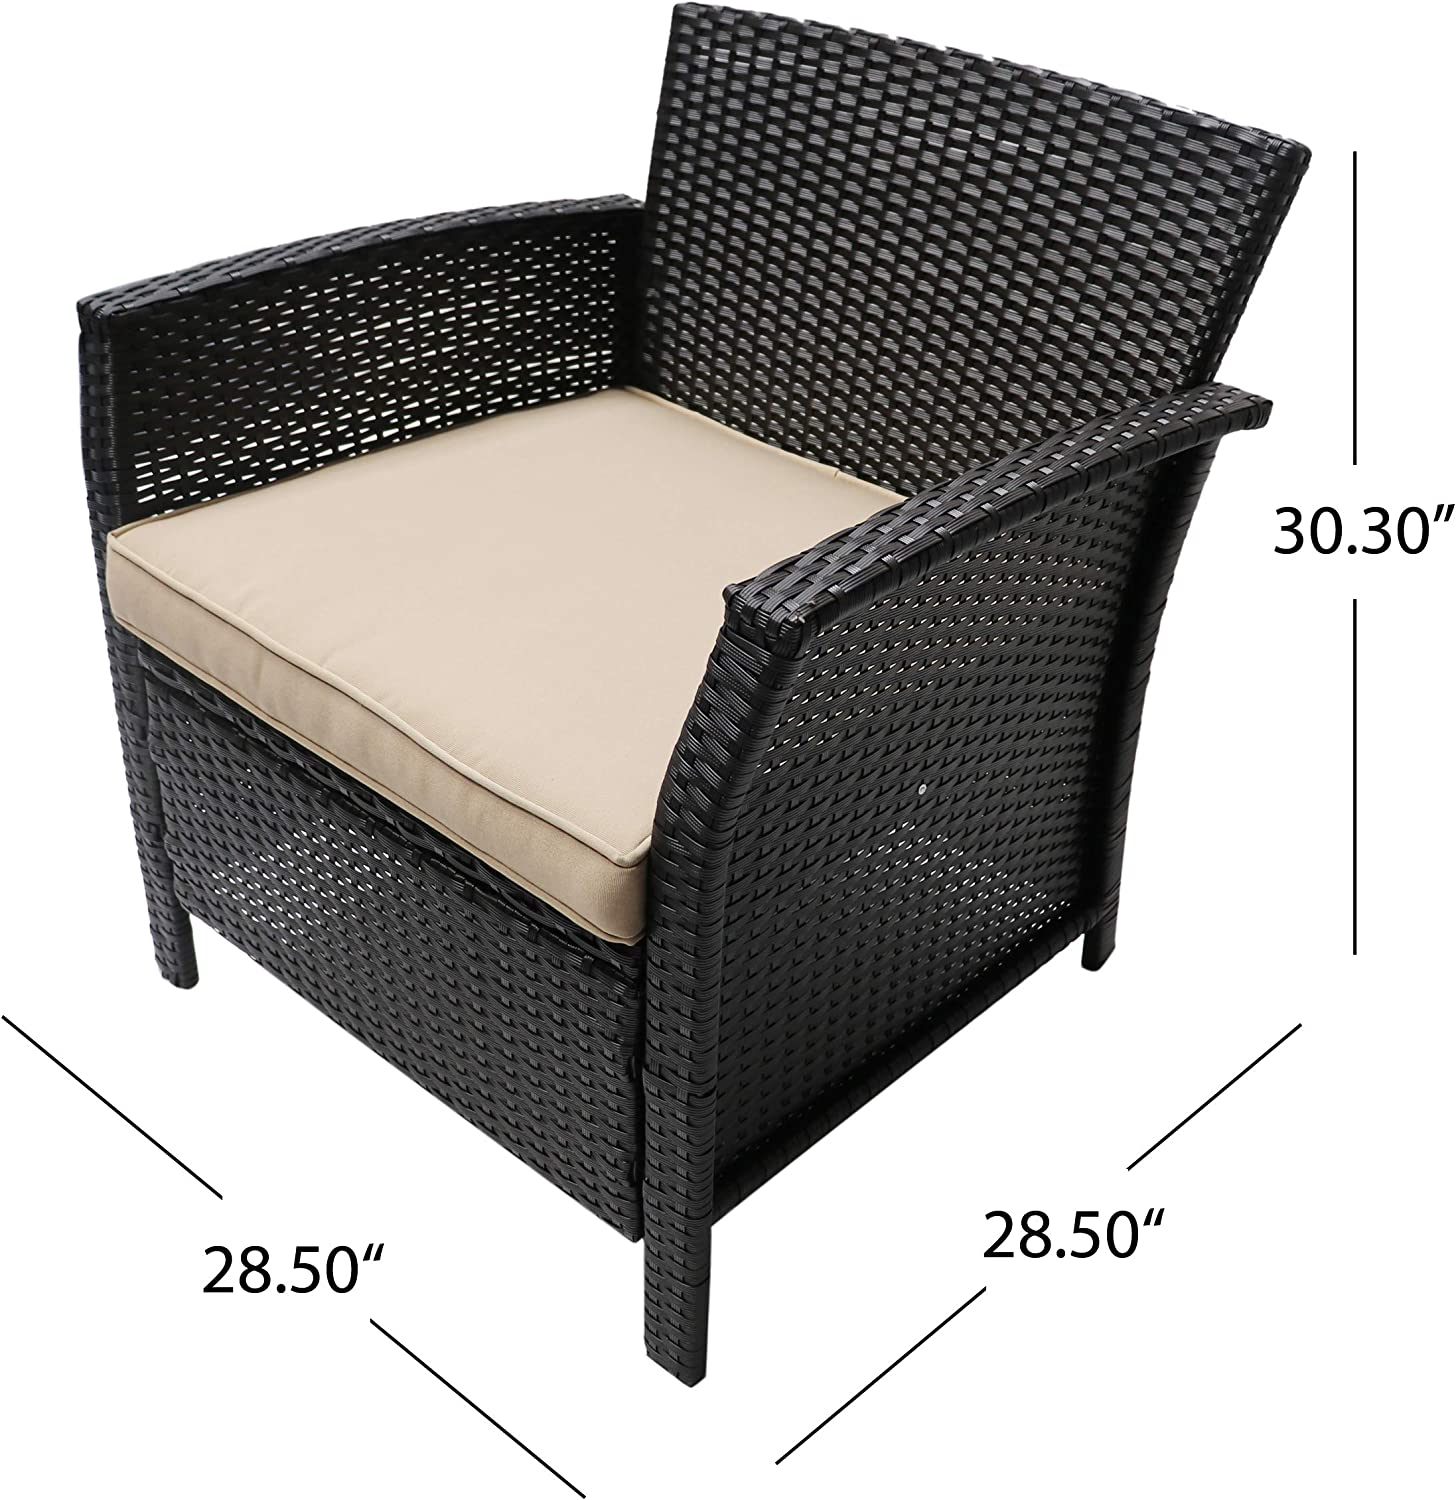 Set of 2 Brown and Tan Christopher Knight Home 305346 Tori Outdoor Wicker Club Chairs